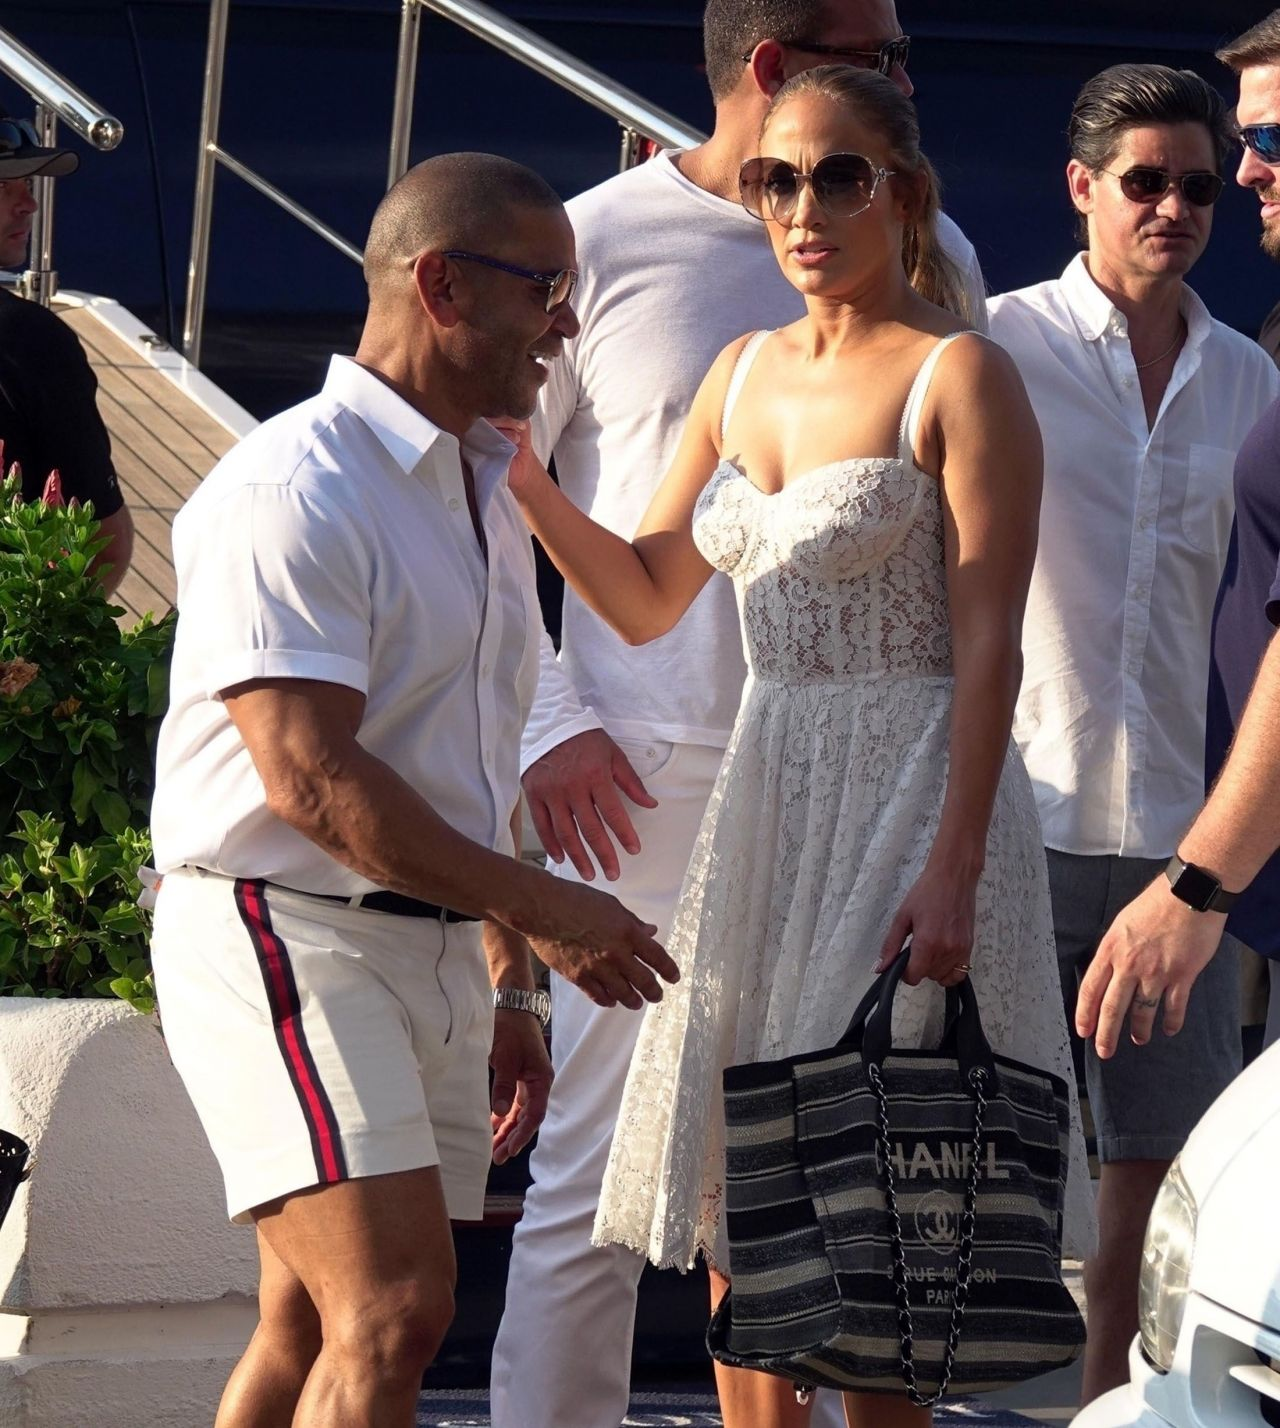 jennifer-lopez-and-alex-rodriguez-on-their-luxury-yacht-in-capri-08-07-2018-11.jpg